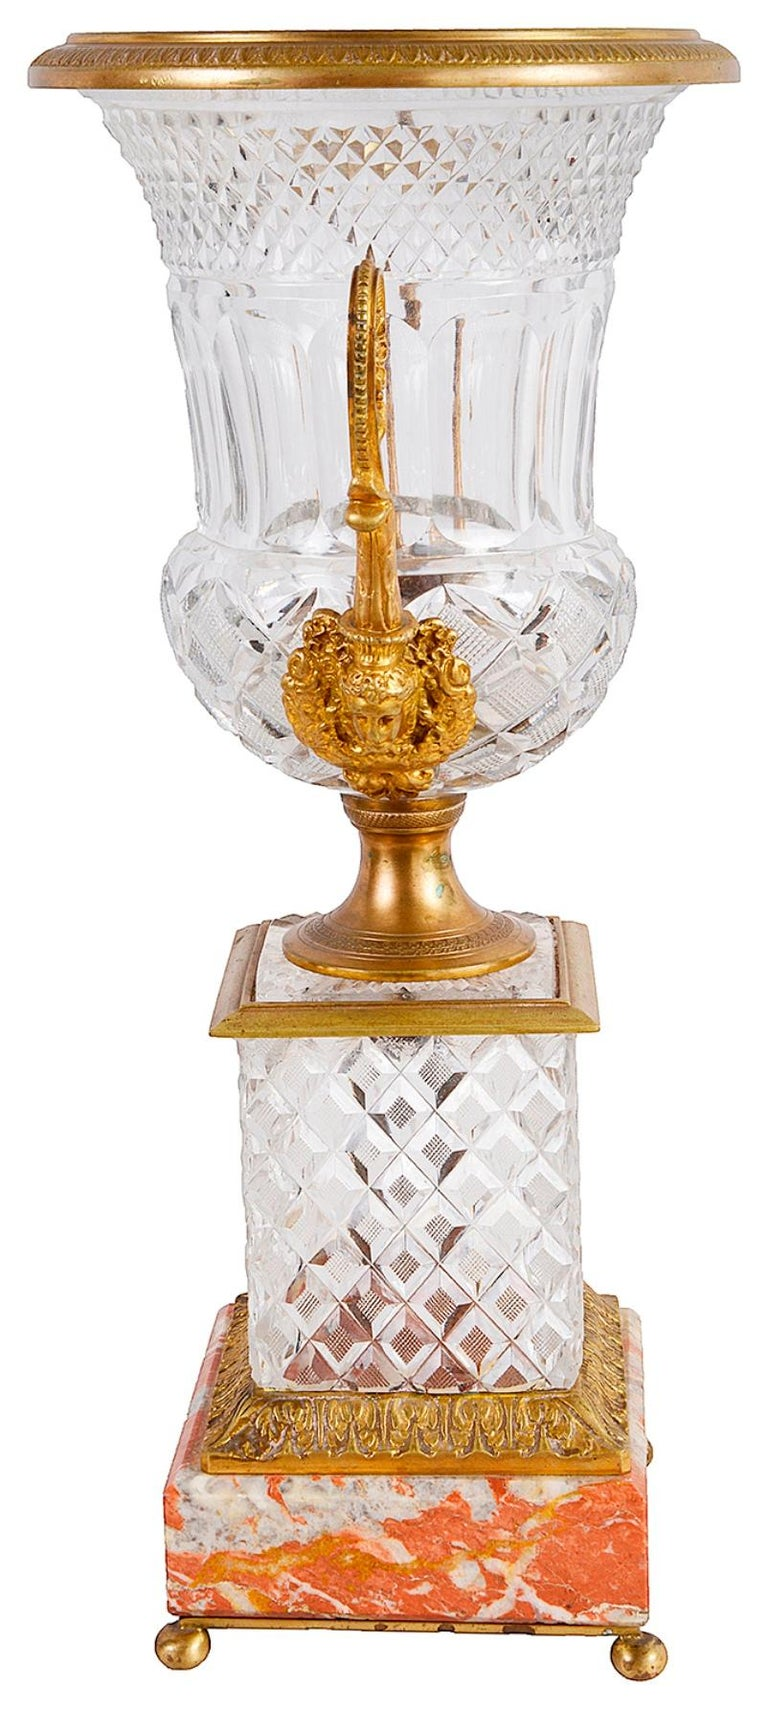 A good quality late 19th century ormolu mounted cut glass urn, having hob nail cut pattern, scrolling foliate twin handles with classical female mask mounts to the base of them. Having a pedestal base, hob nail cut glass plinth, raised on rouge